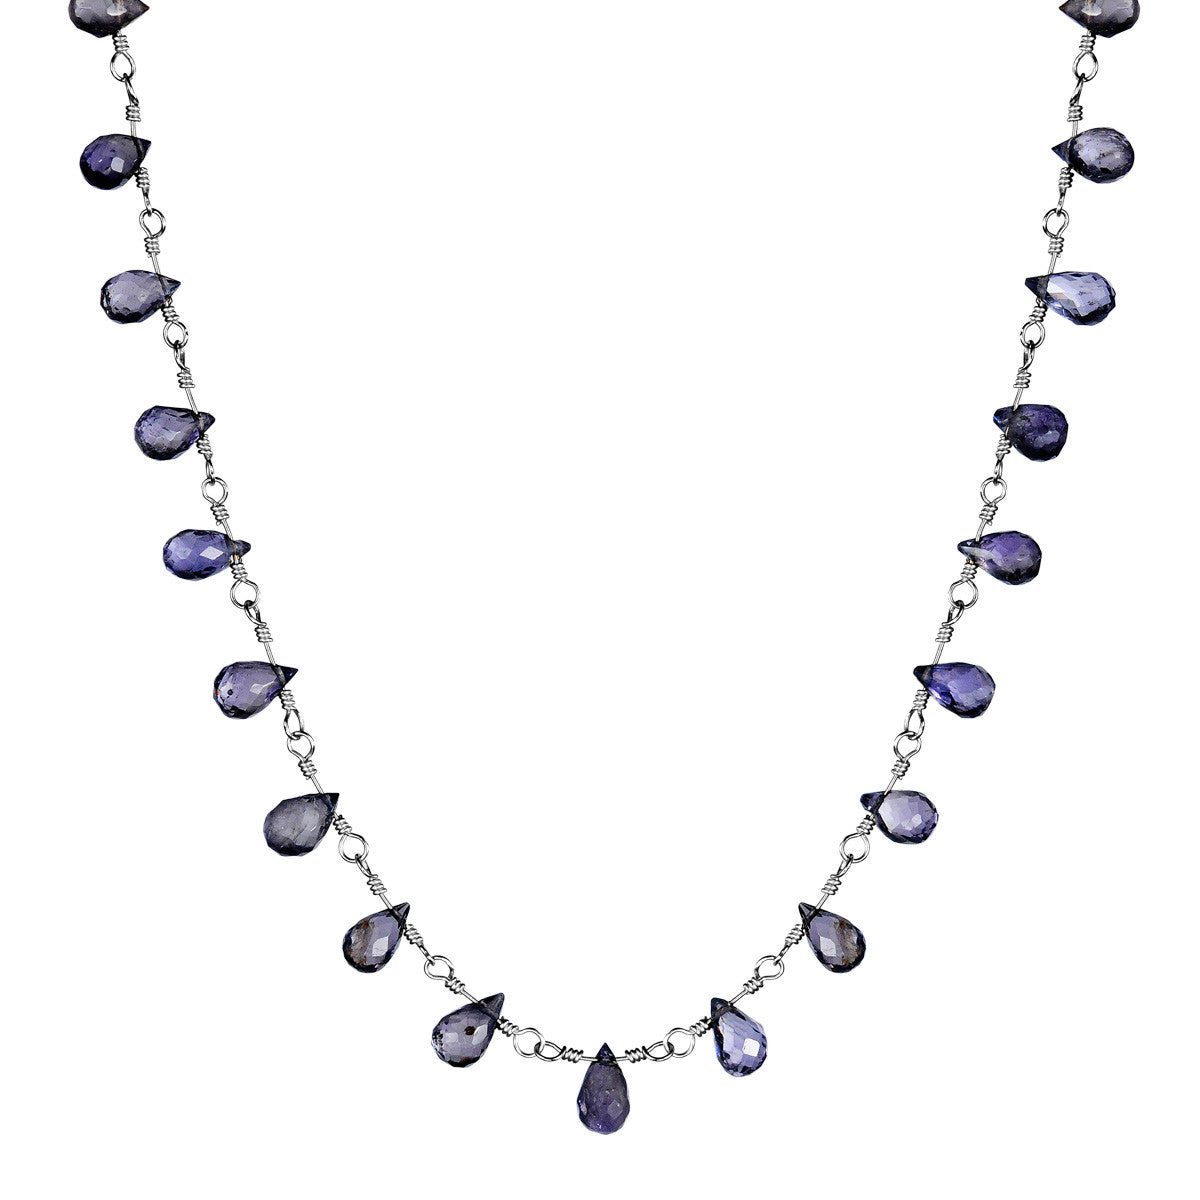 sue necklace iolite iolithcoll os